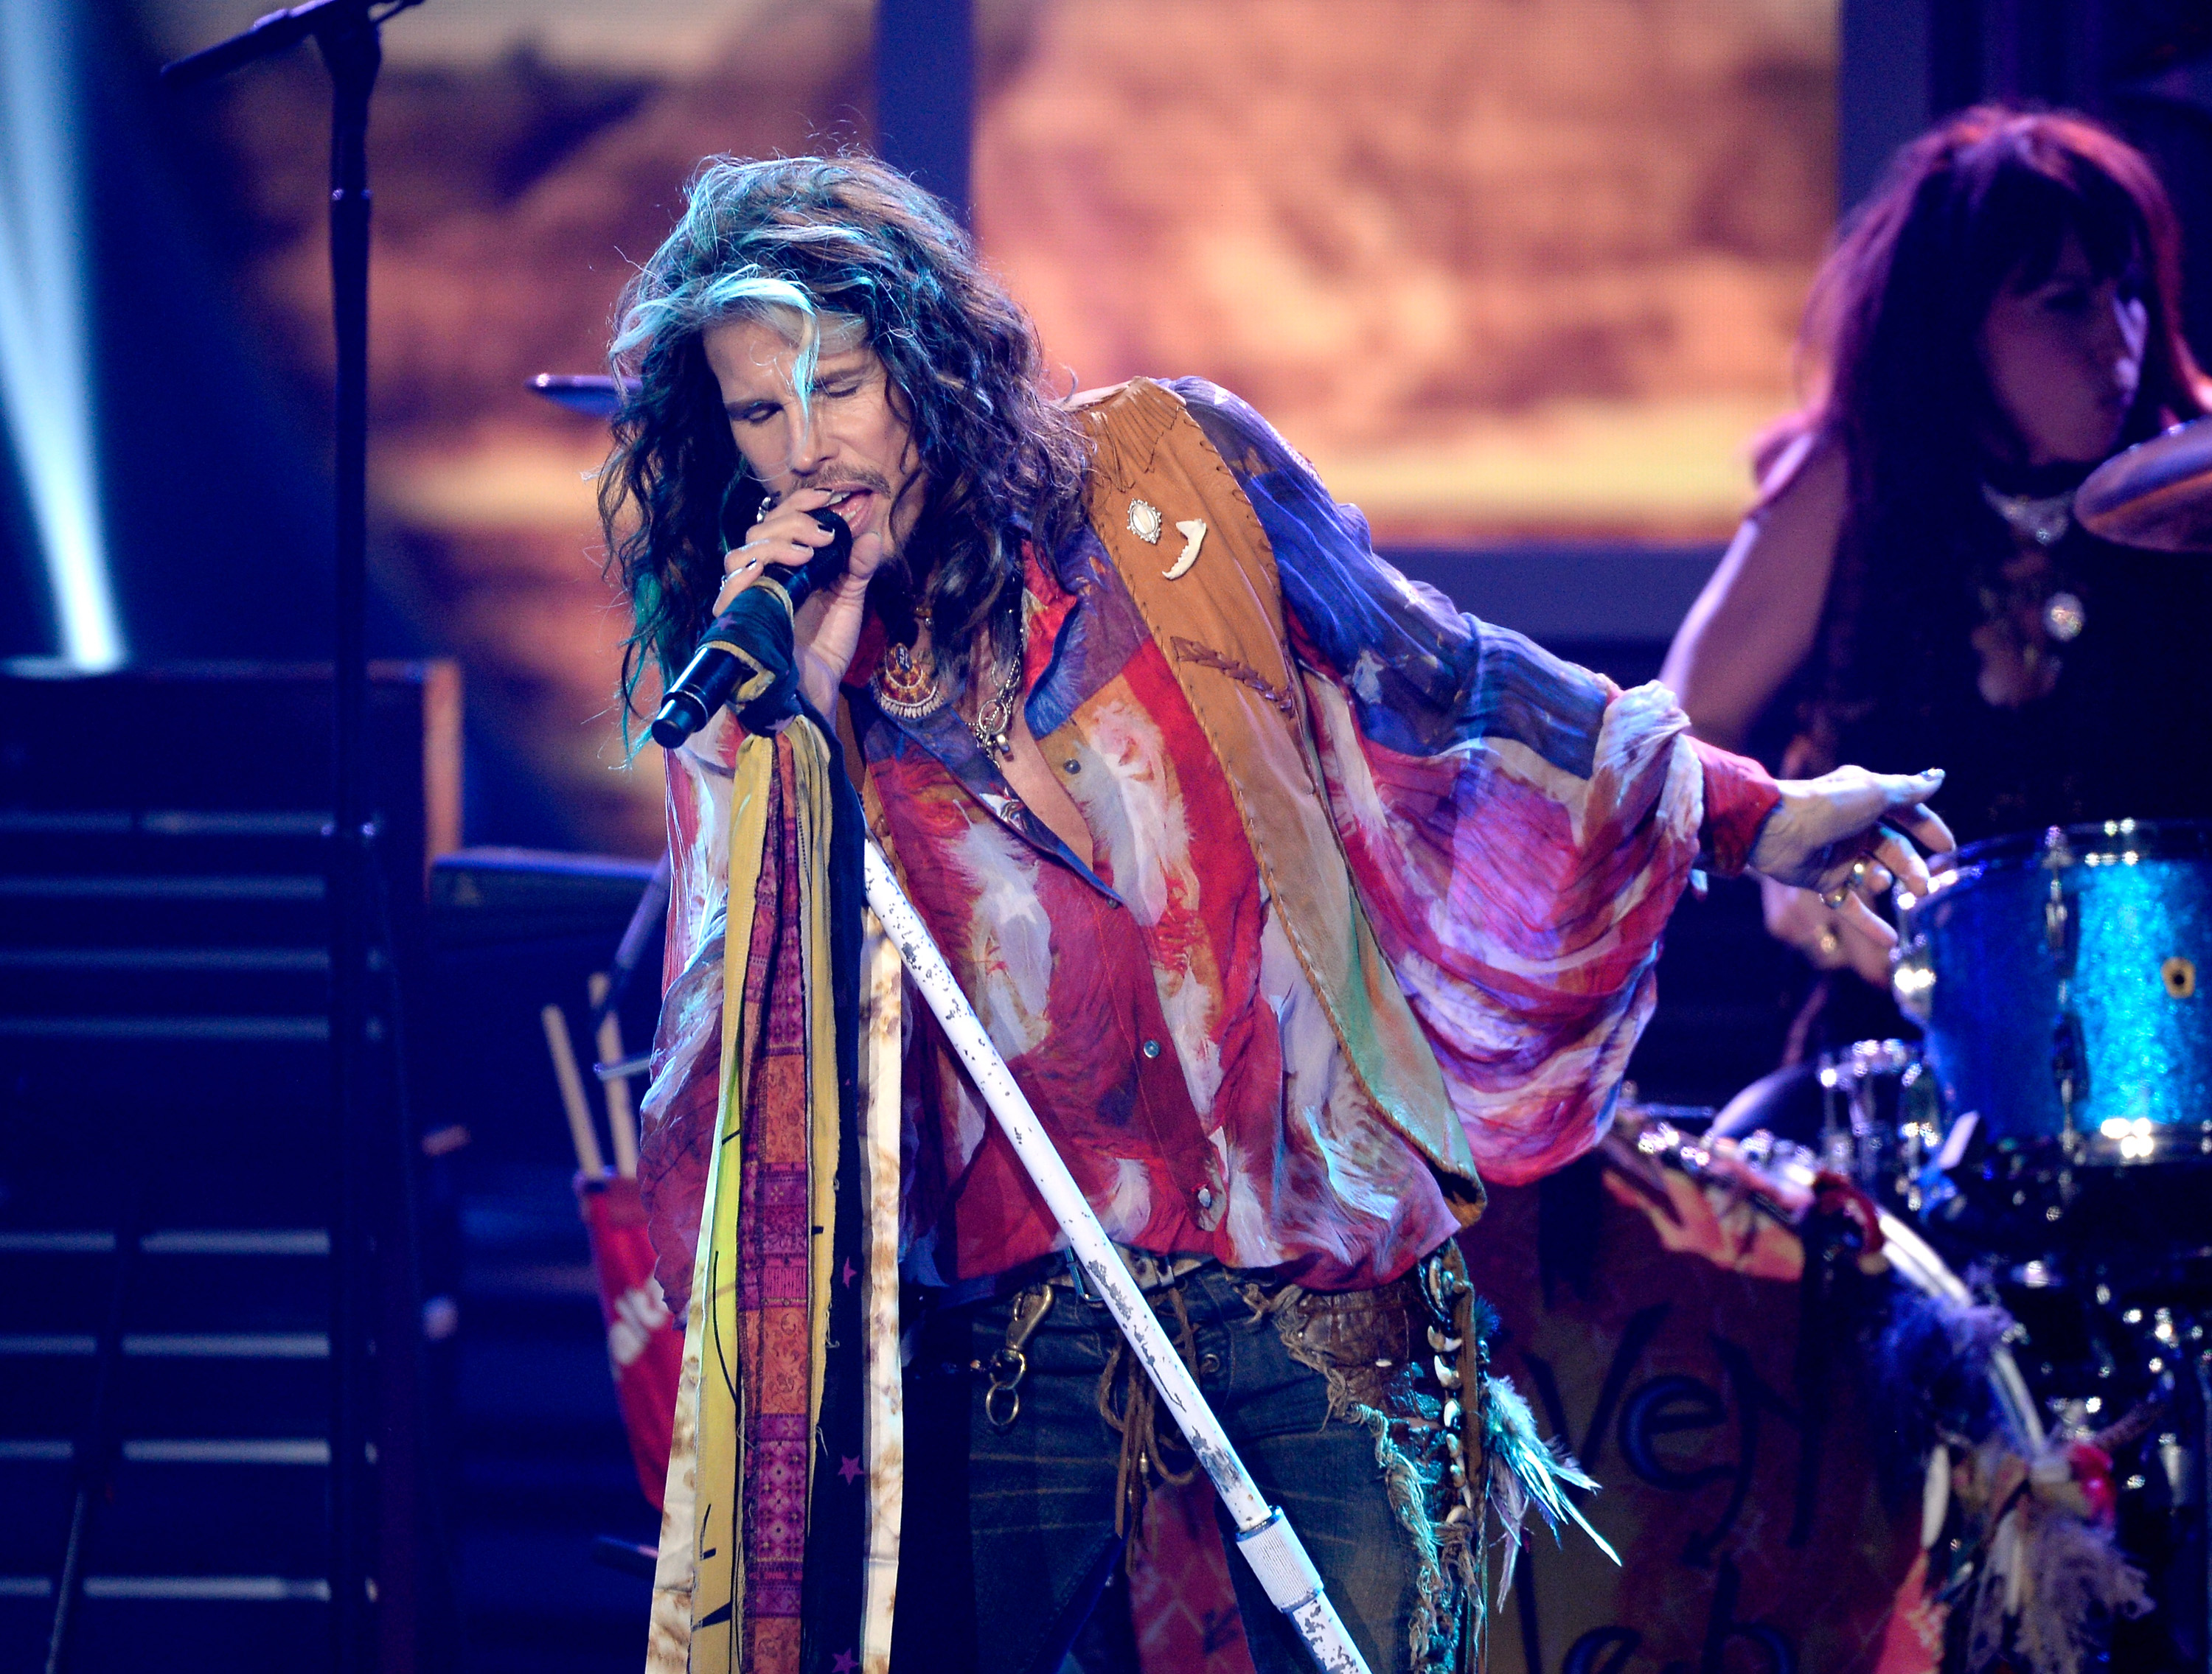 Hear Steven Tyler's New Country Song 'Love Is Your Name'